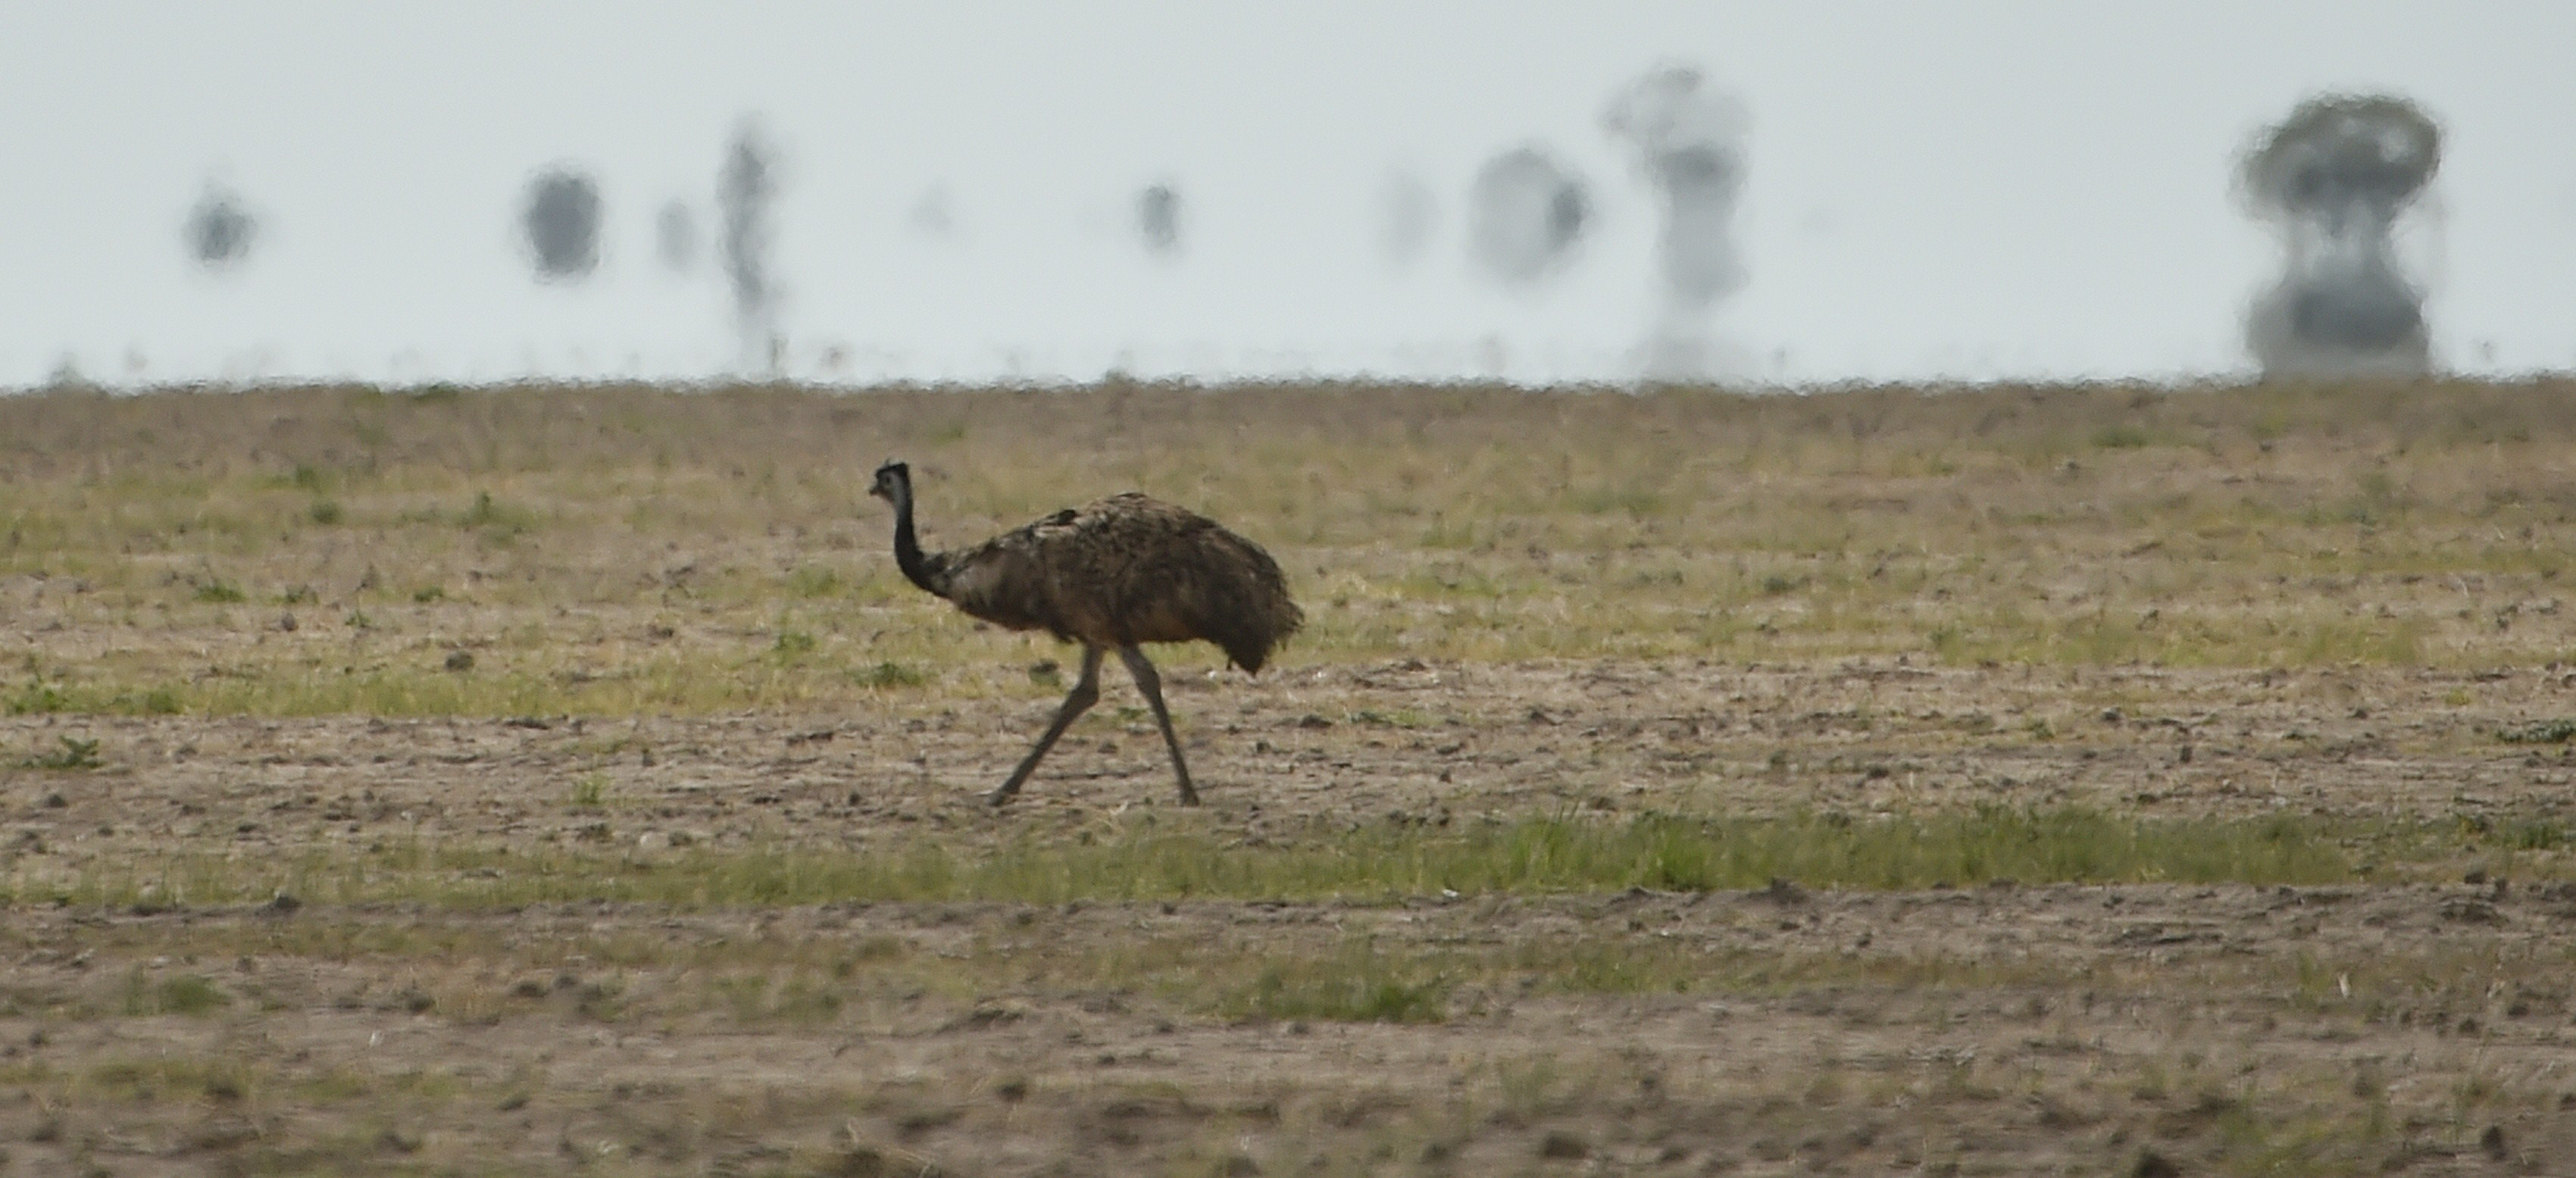 An emu looks for food in the dry earth near the Australian agricultural town of Walgett.